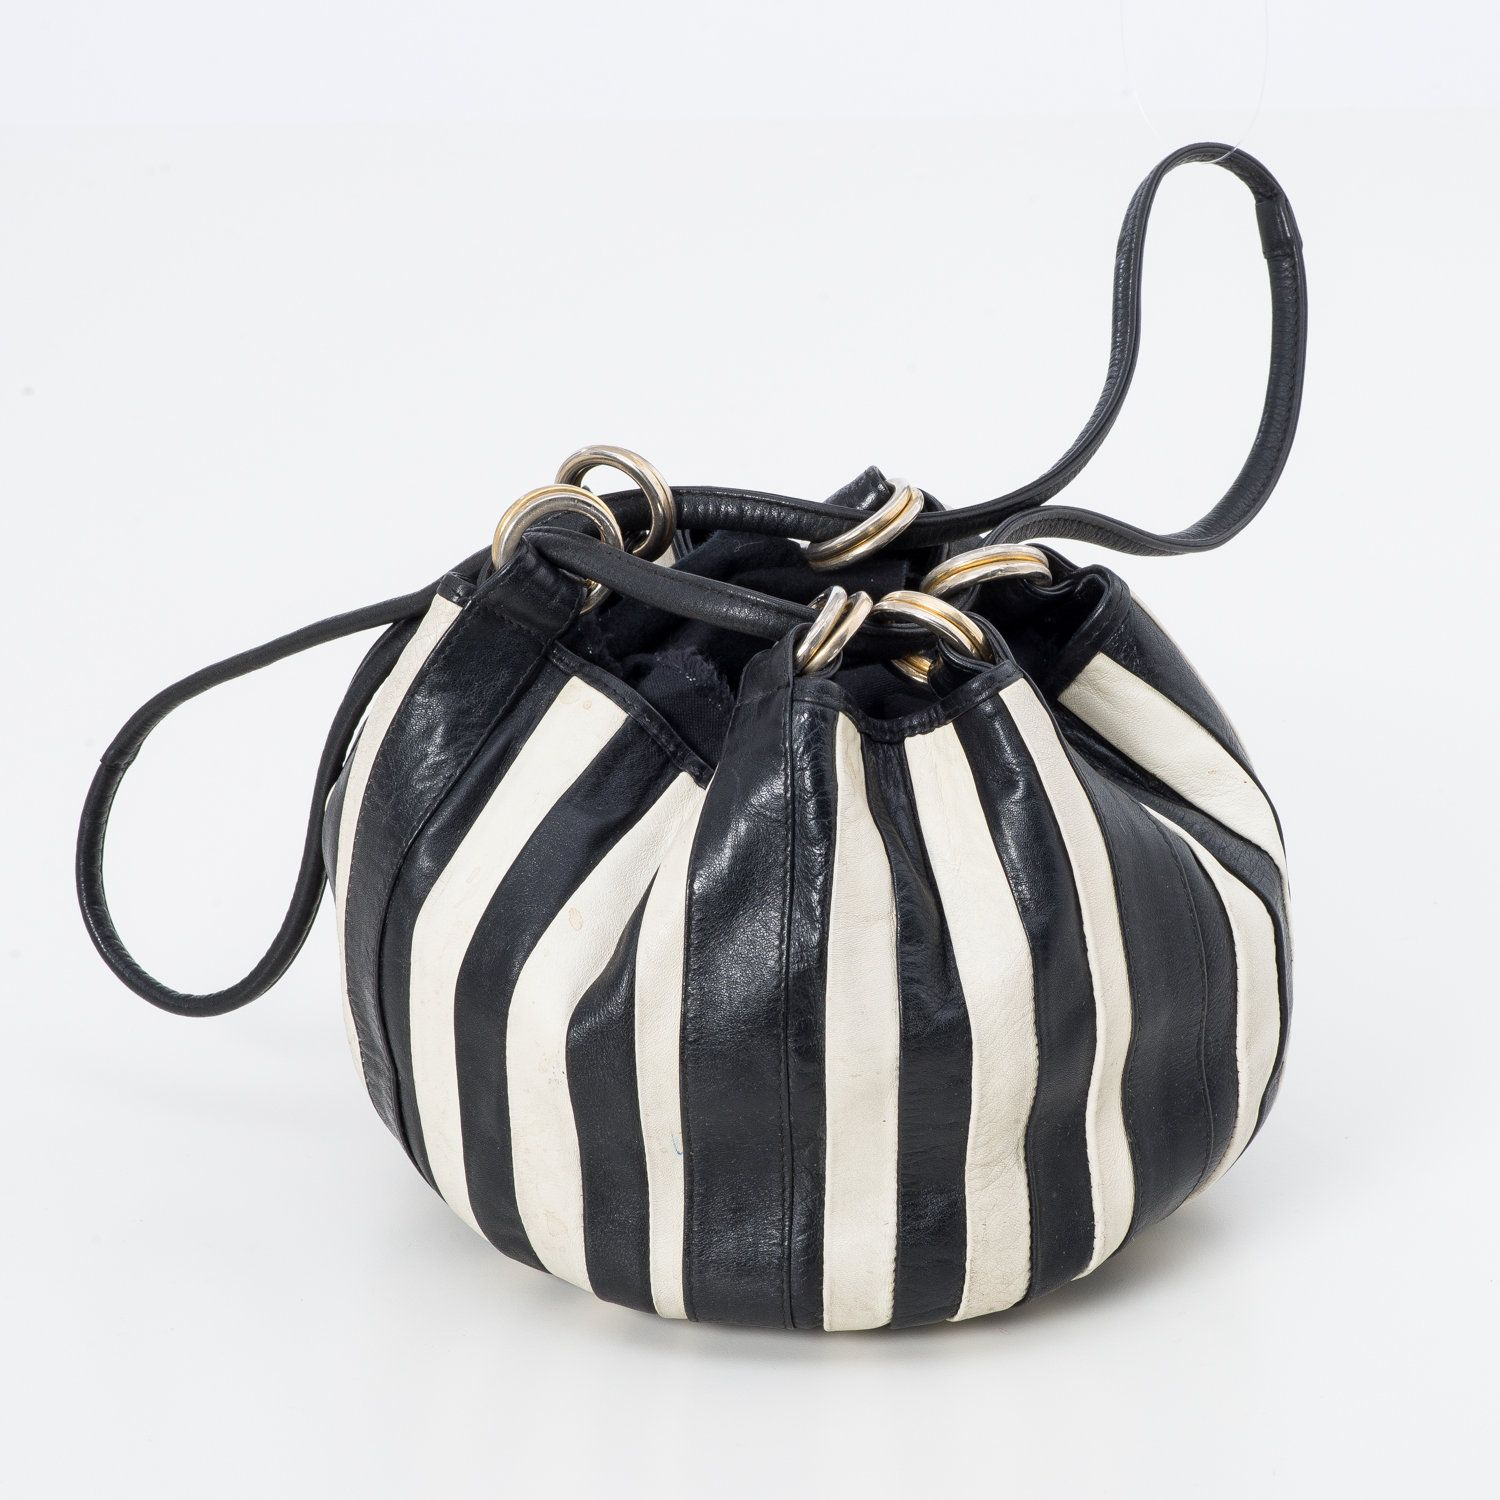 1980's Vintage Black and White Striped Leather Hobo Bucket